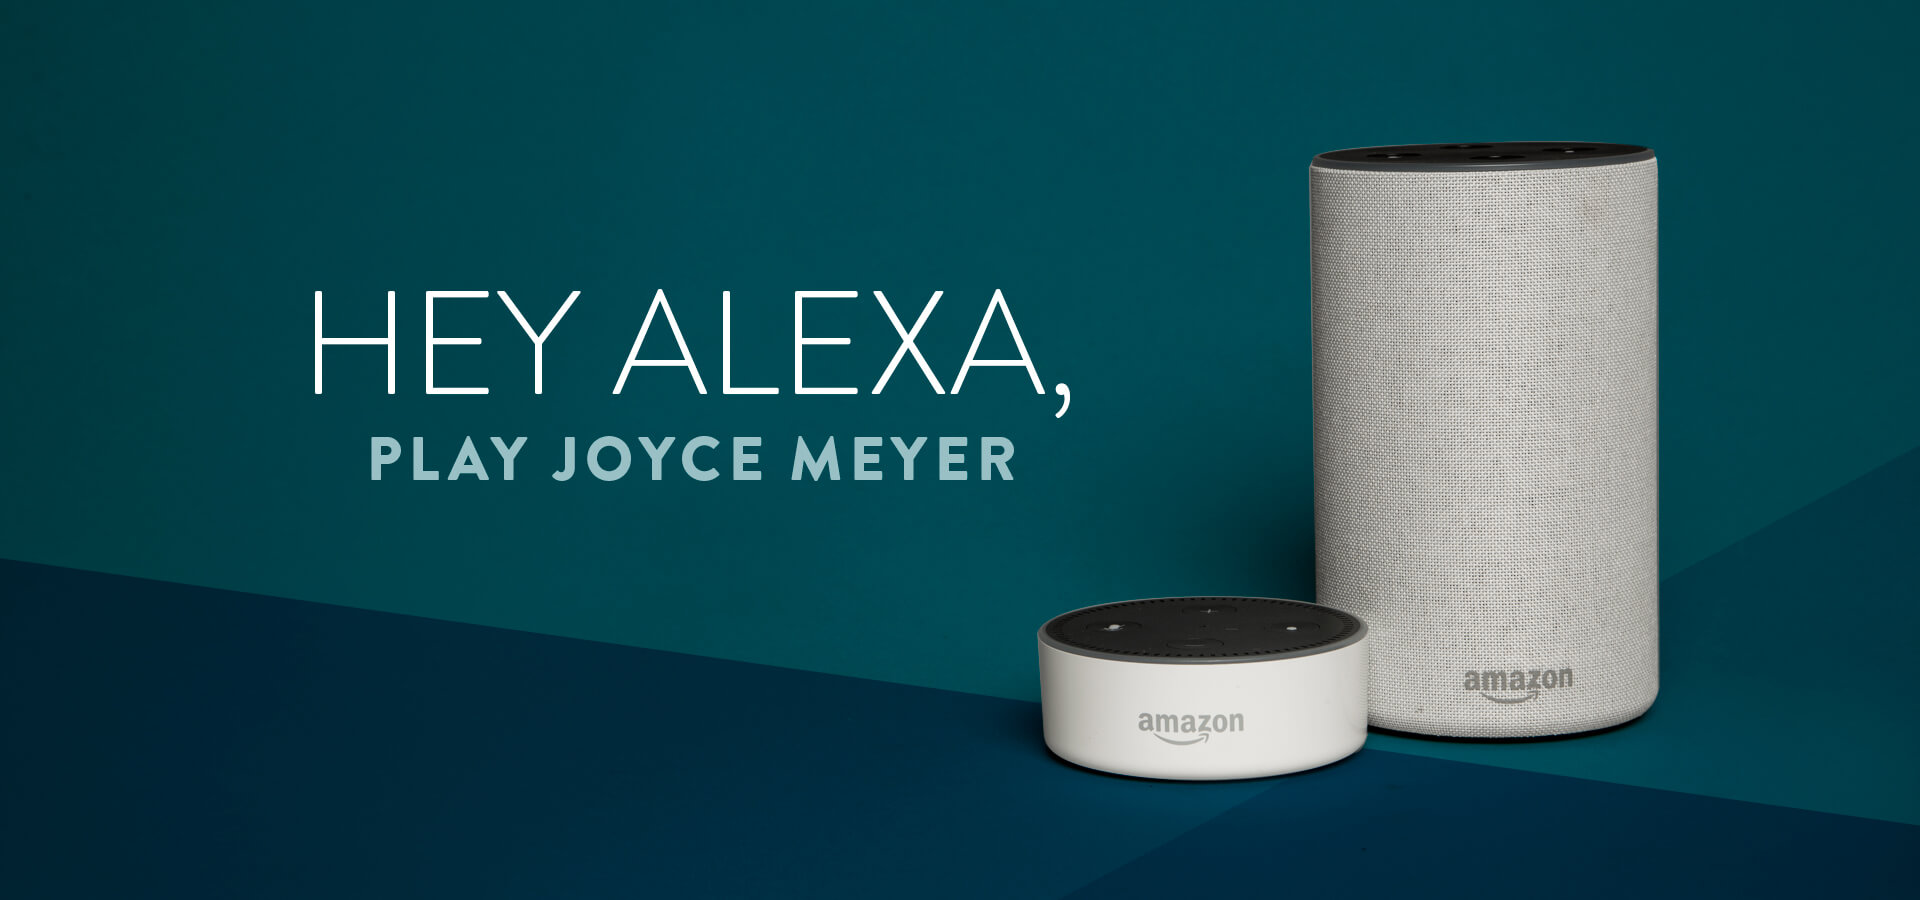 Hey Alexa, play Joyce Meyer